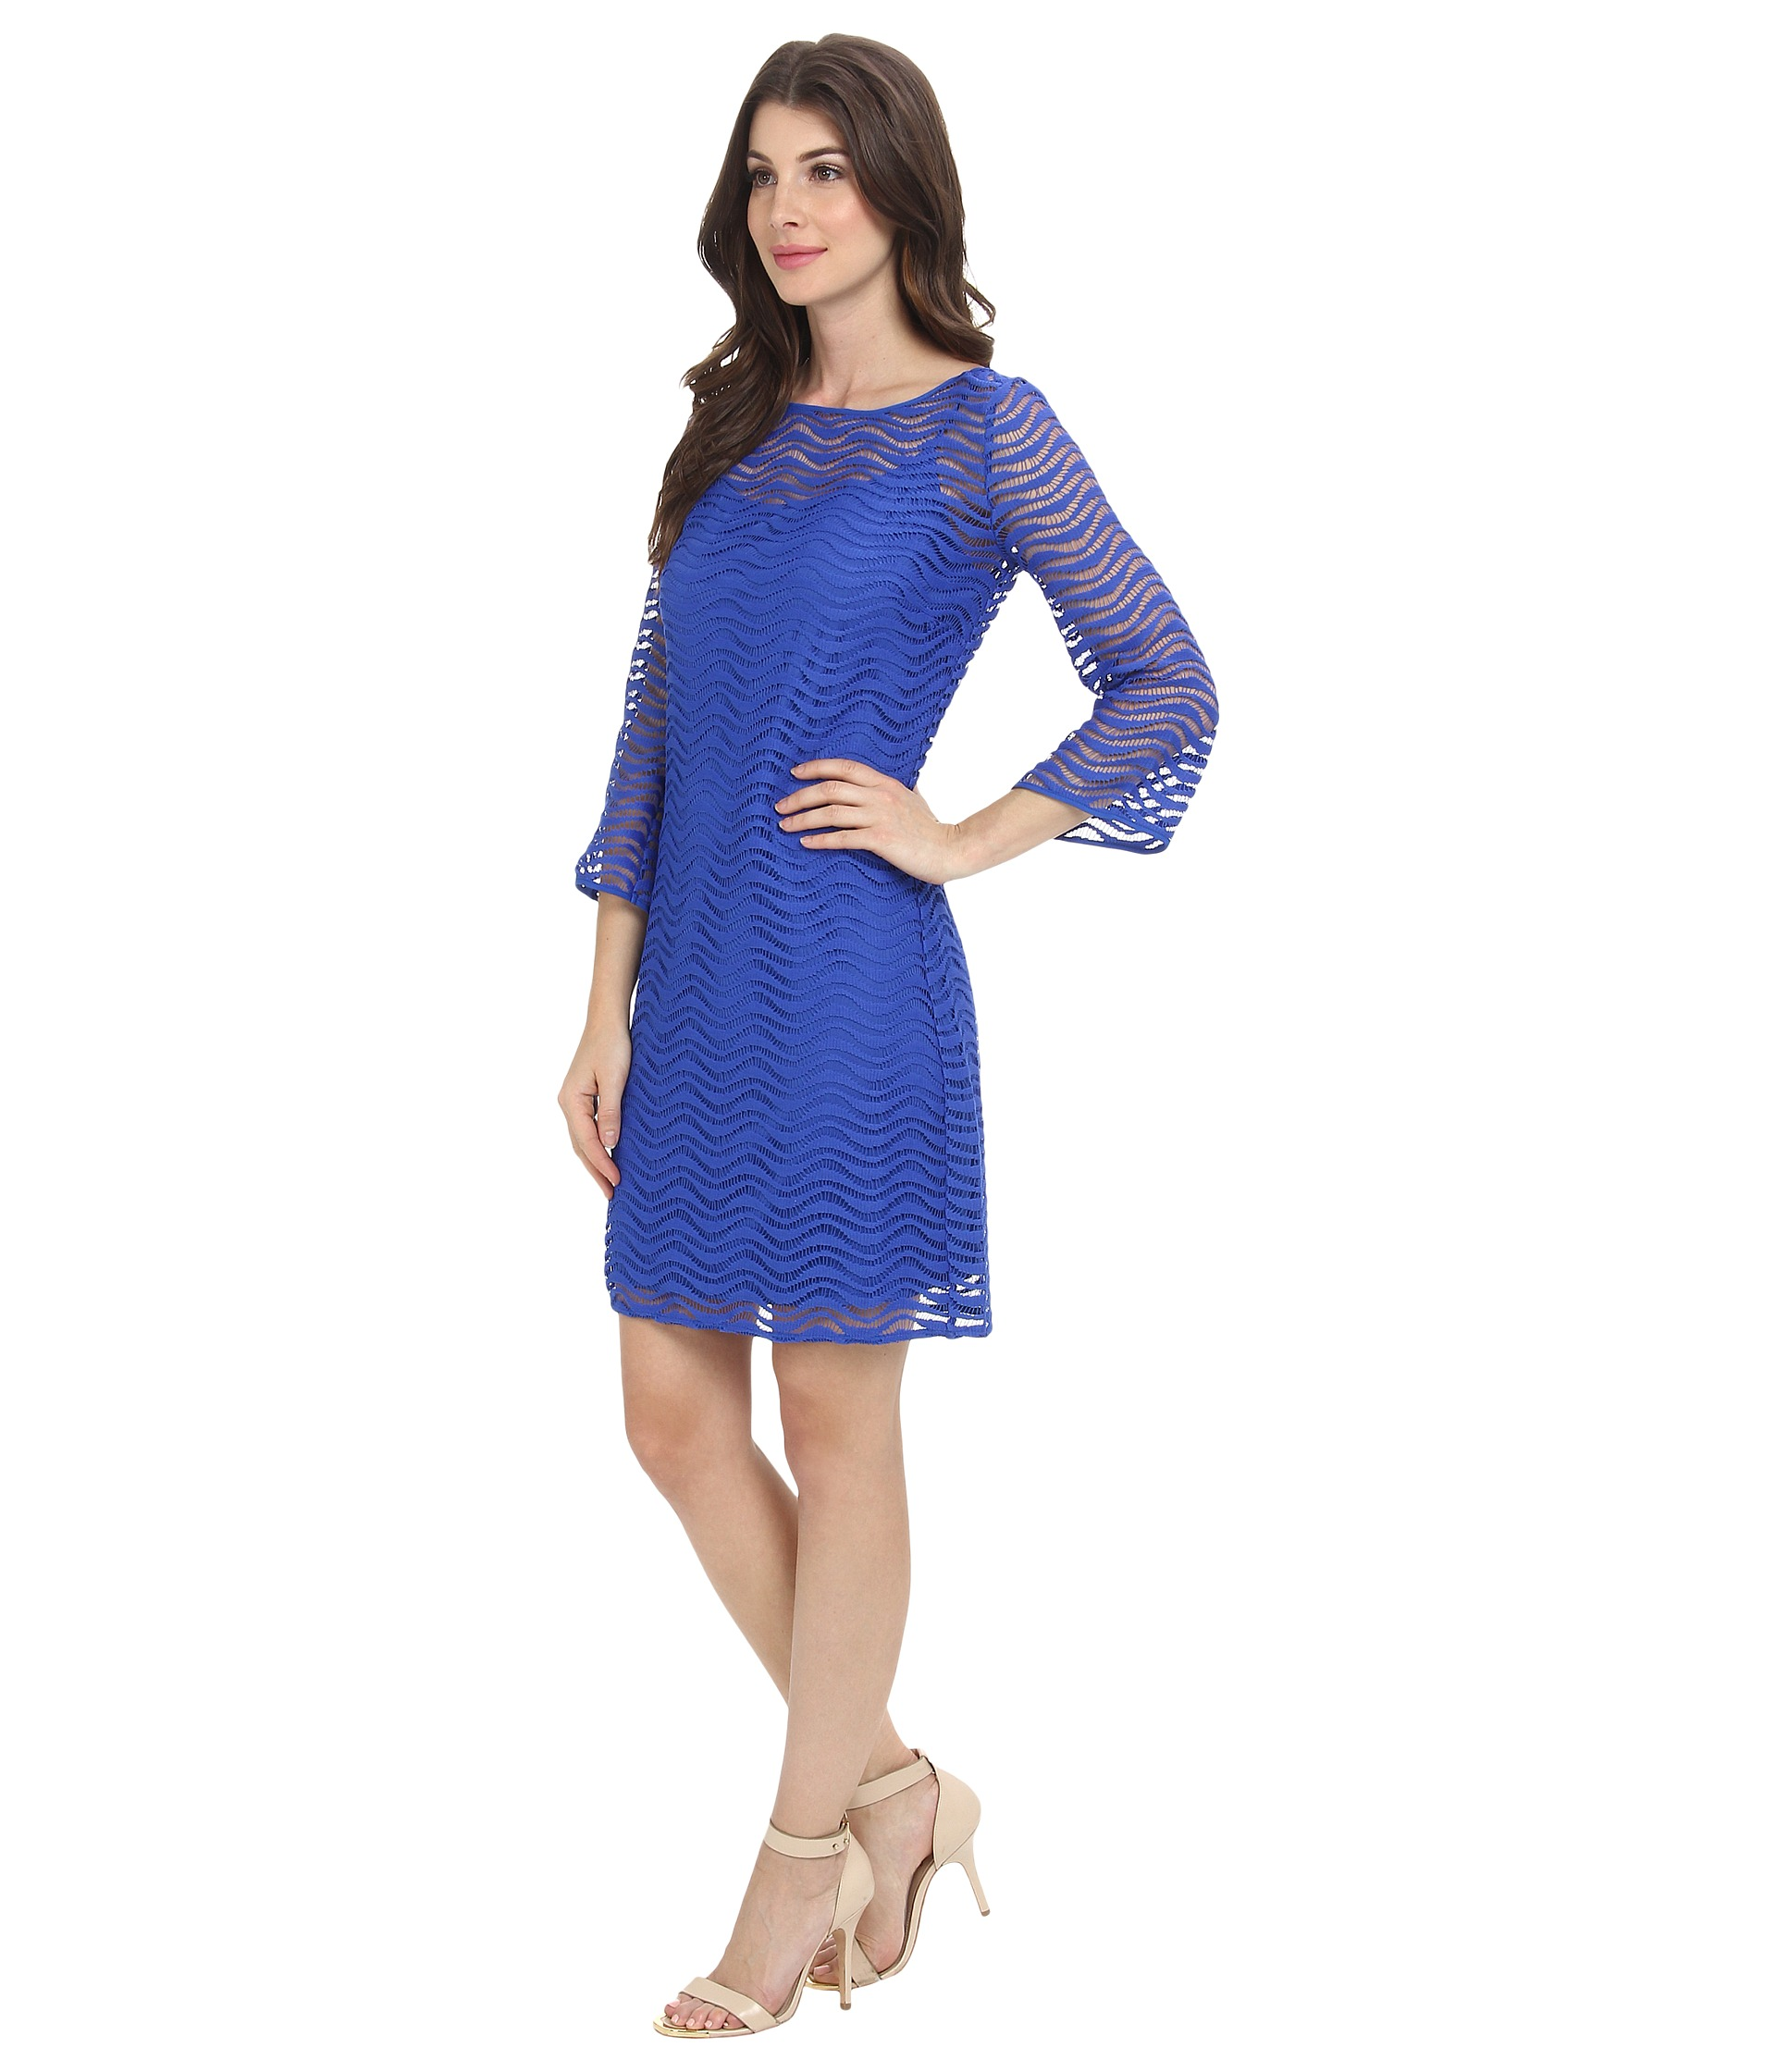 Lilly Pulitzer Dresses At Belk Lilly Pulitzer Topanga Lace